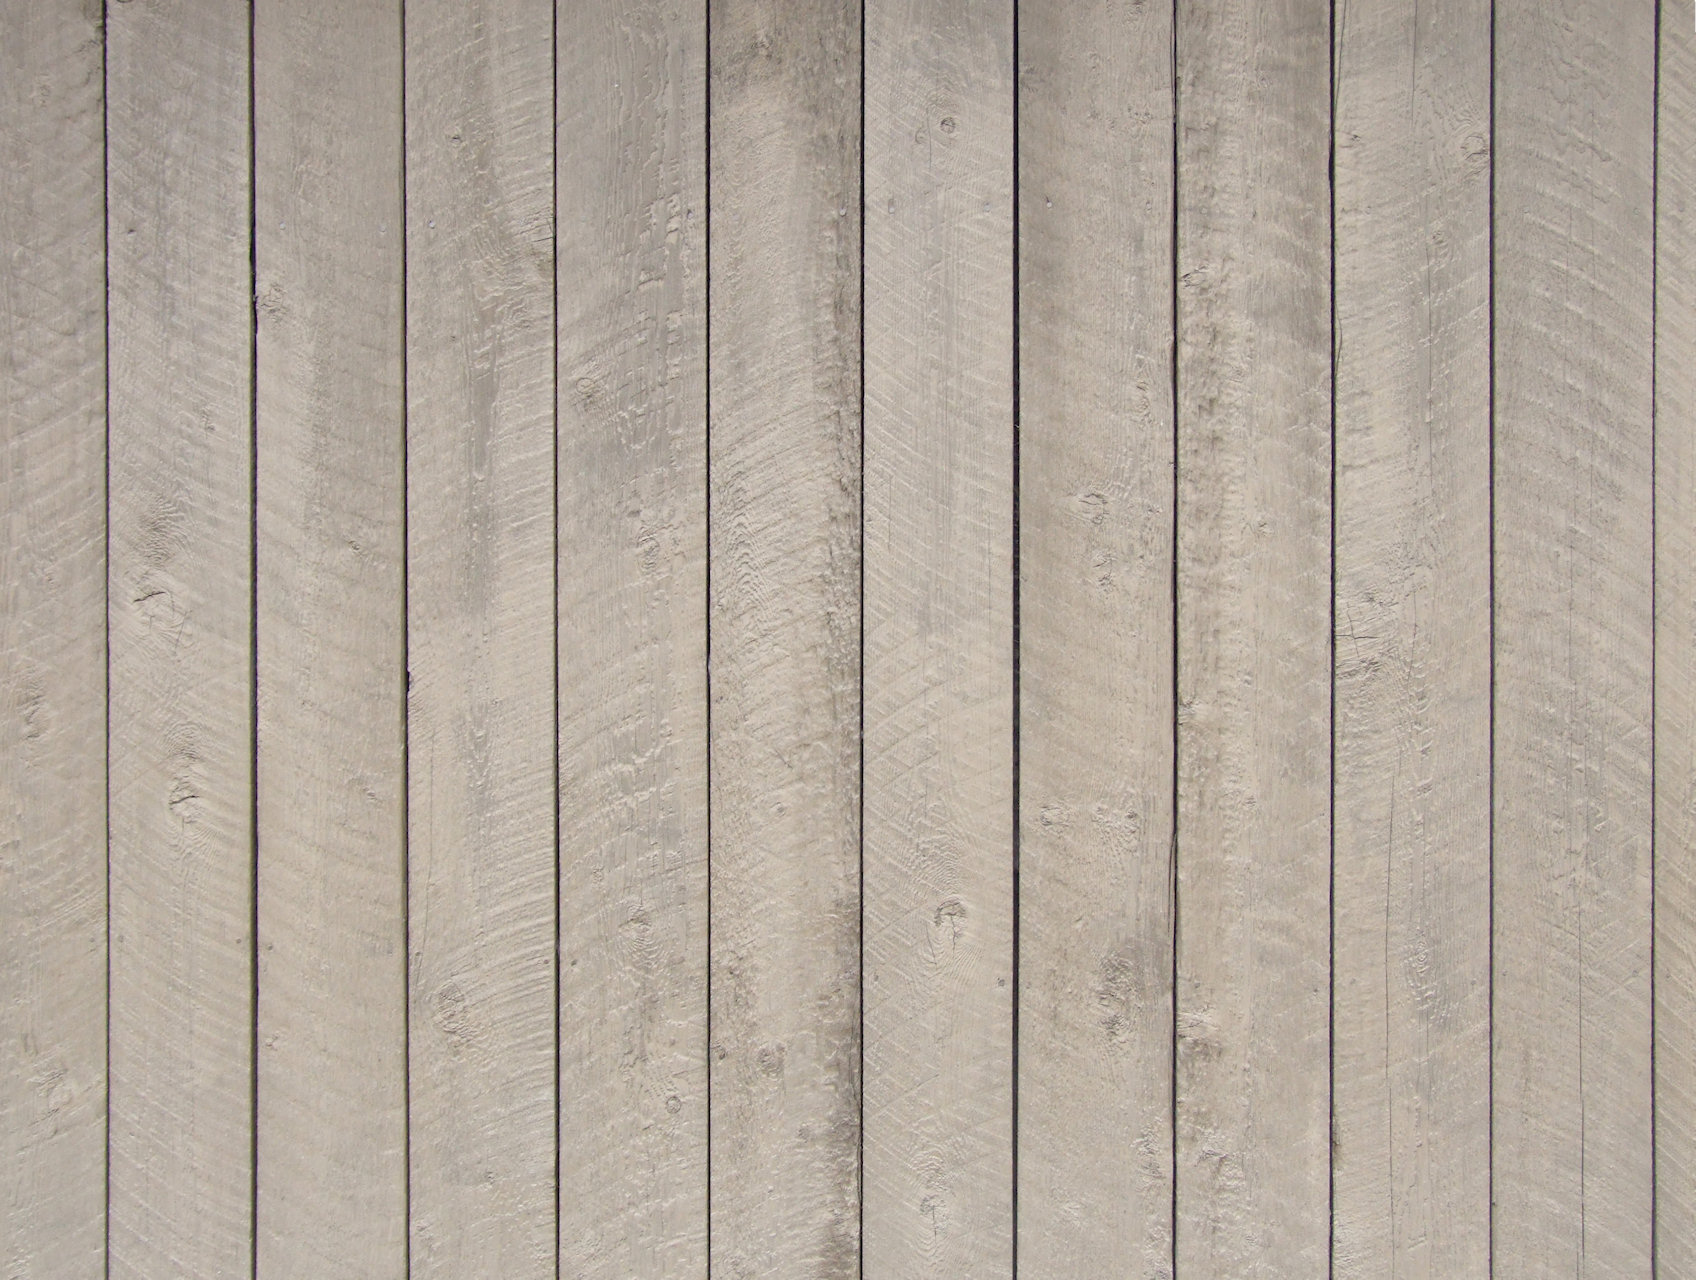 White wood panel wallpaper wallpapersafari for Brewster wallcovering wood panels mural 8 700